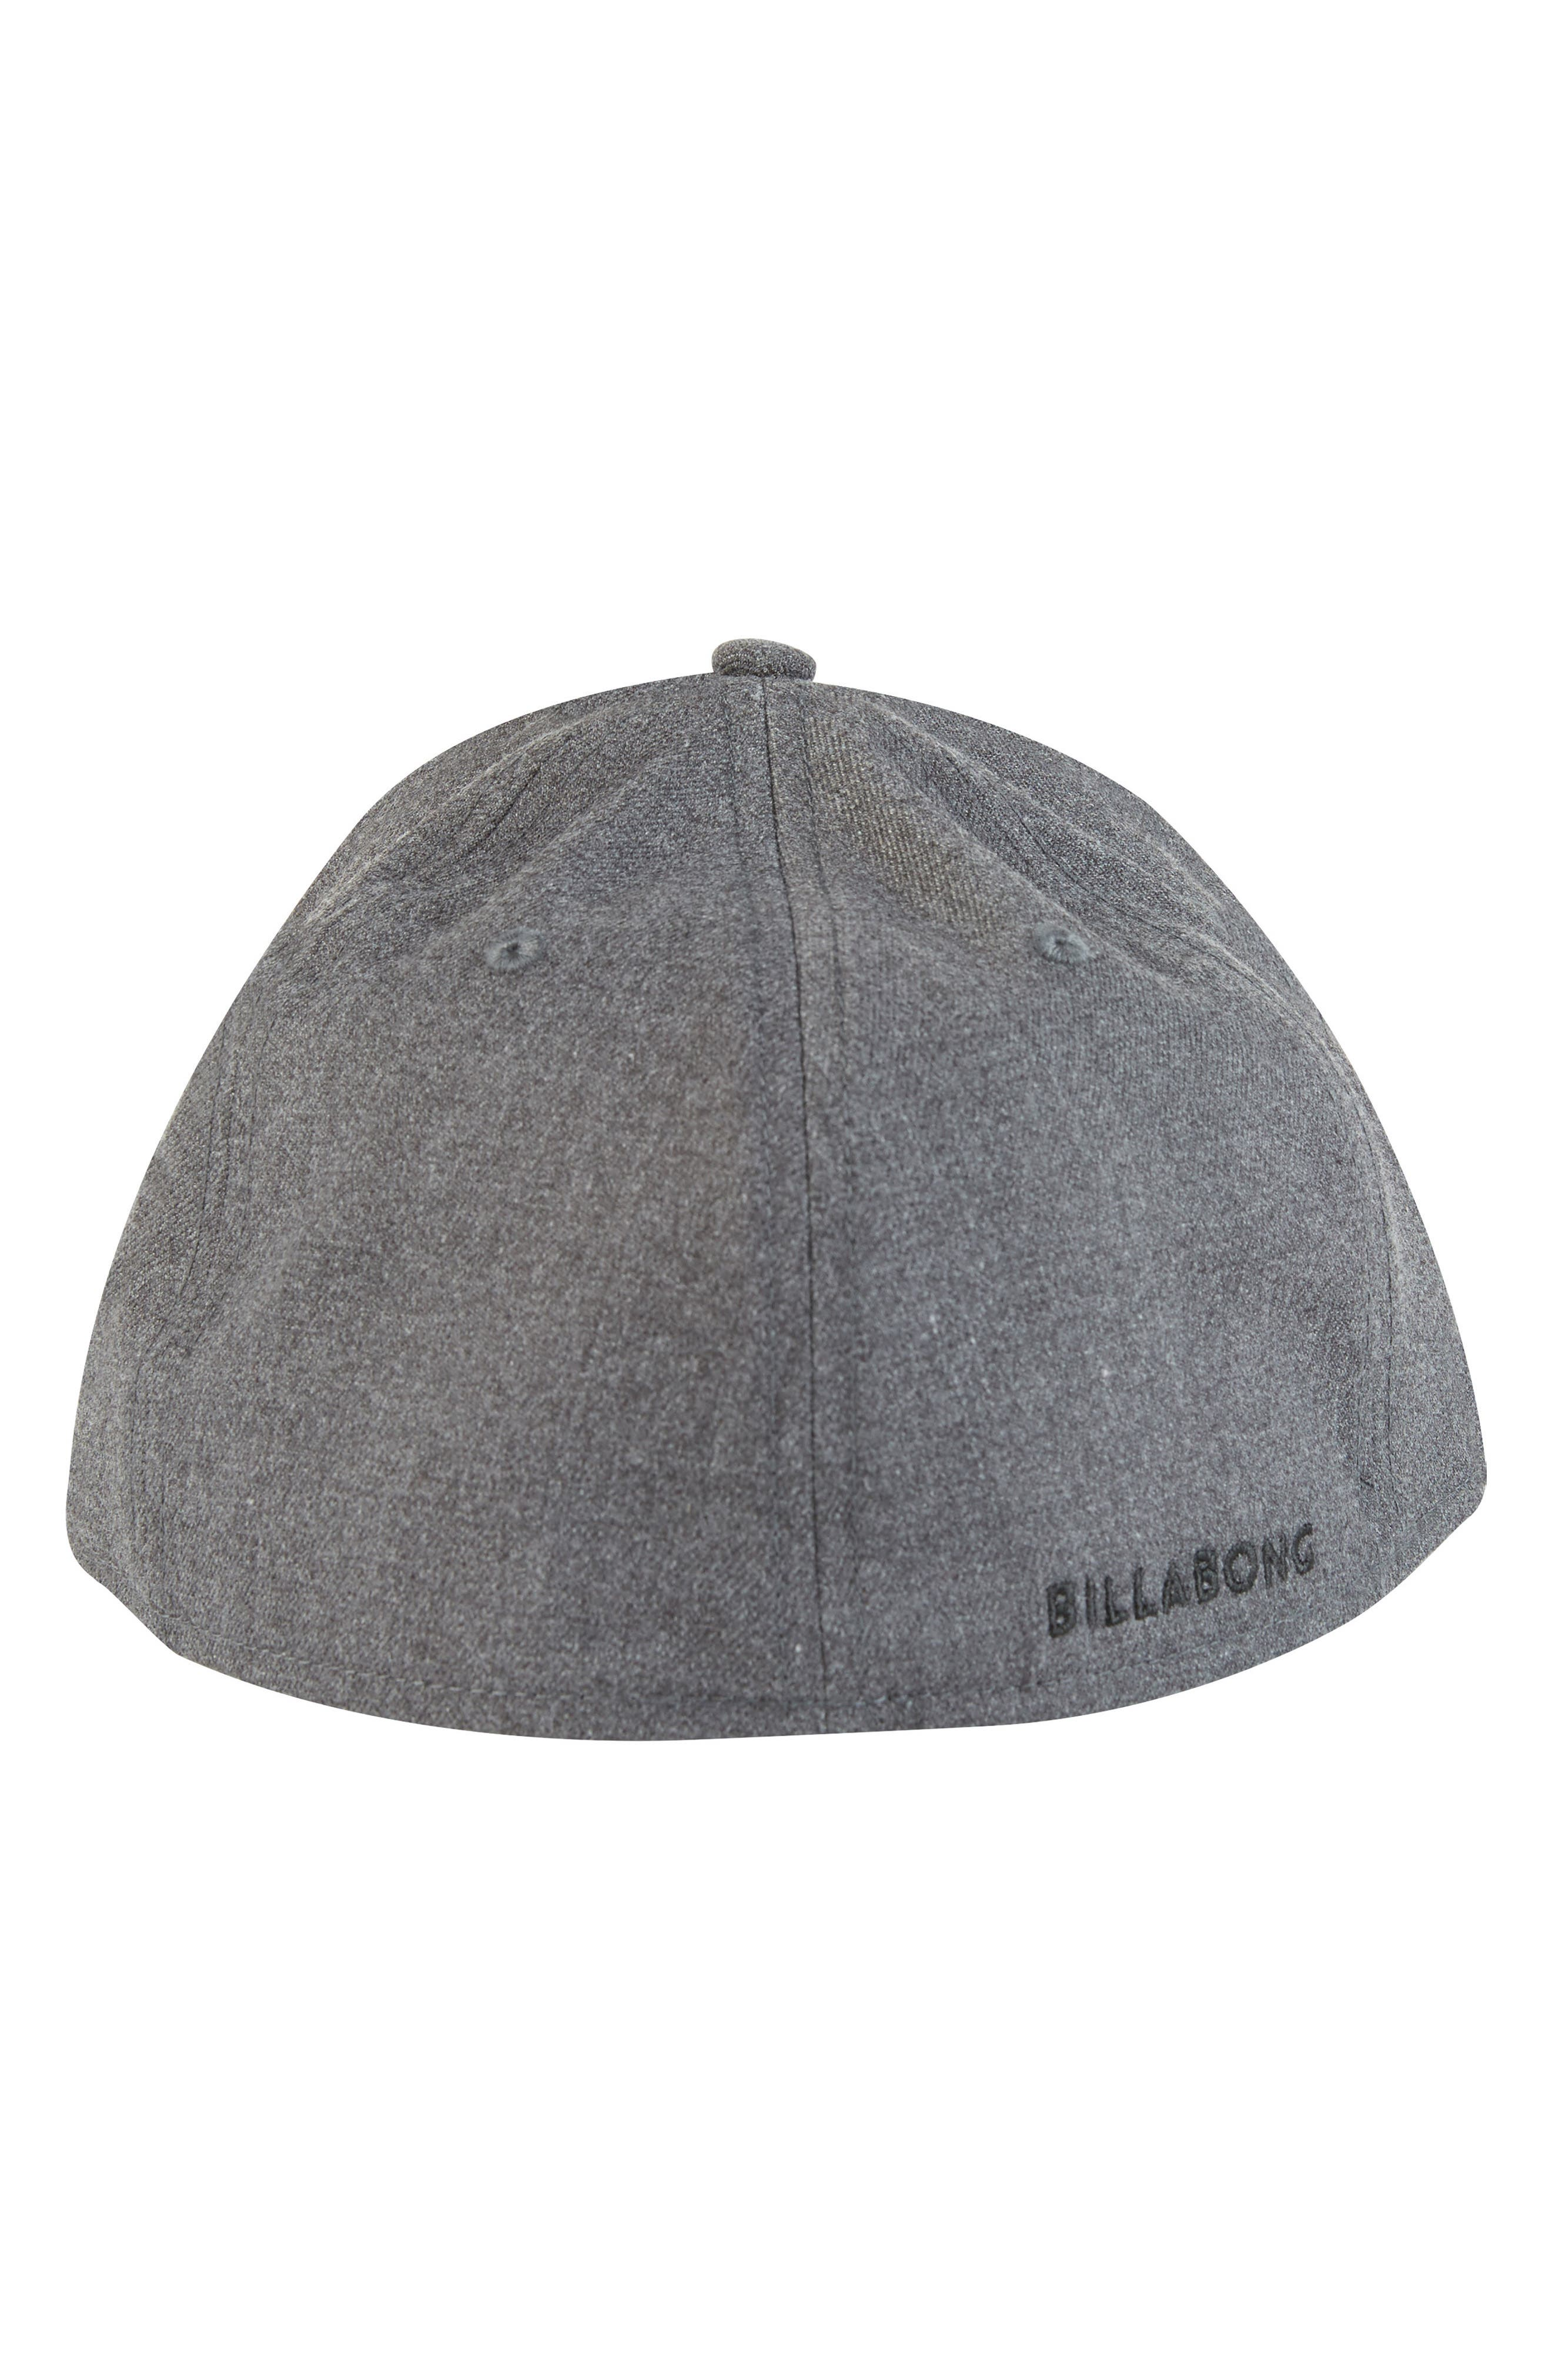 All Day Stretch Ball Cap,                             Alternate thumbnail 3, color,                             DARK GREY HEATHER